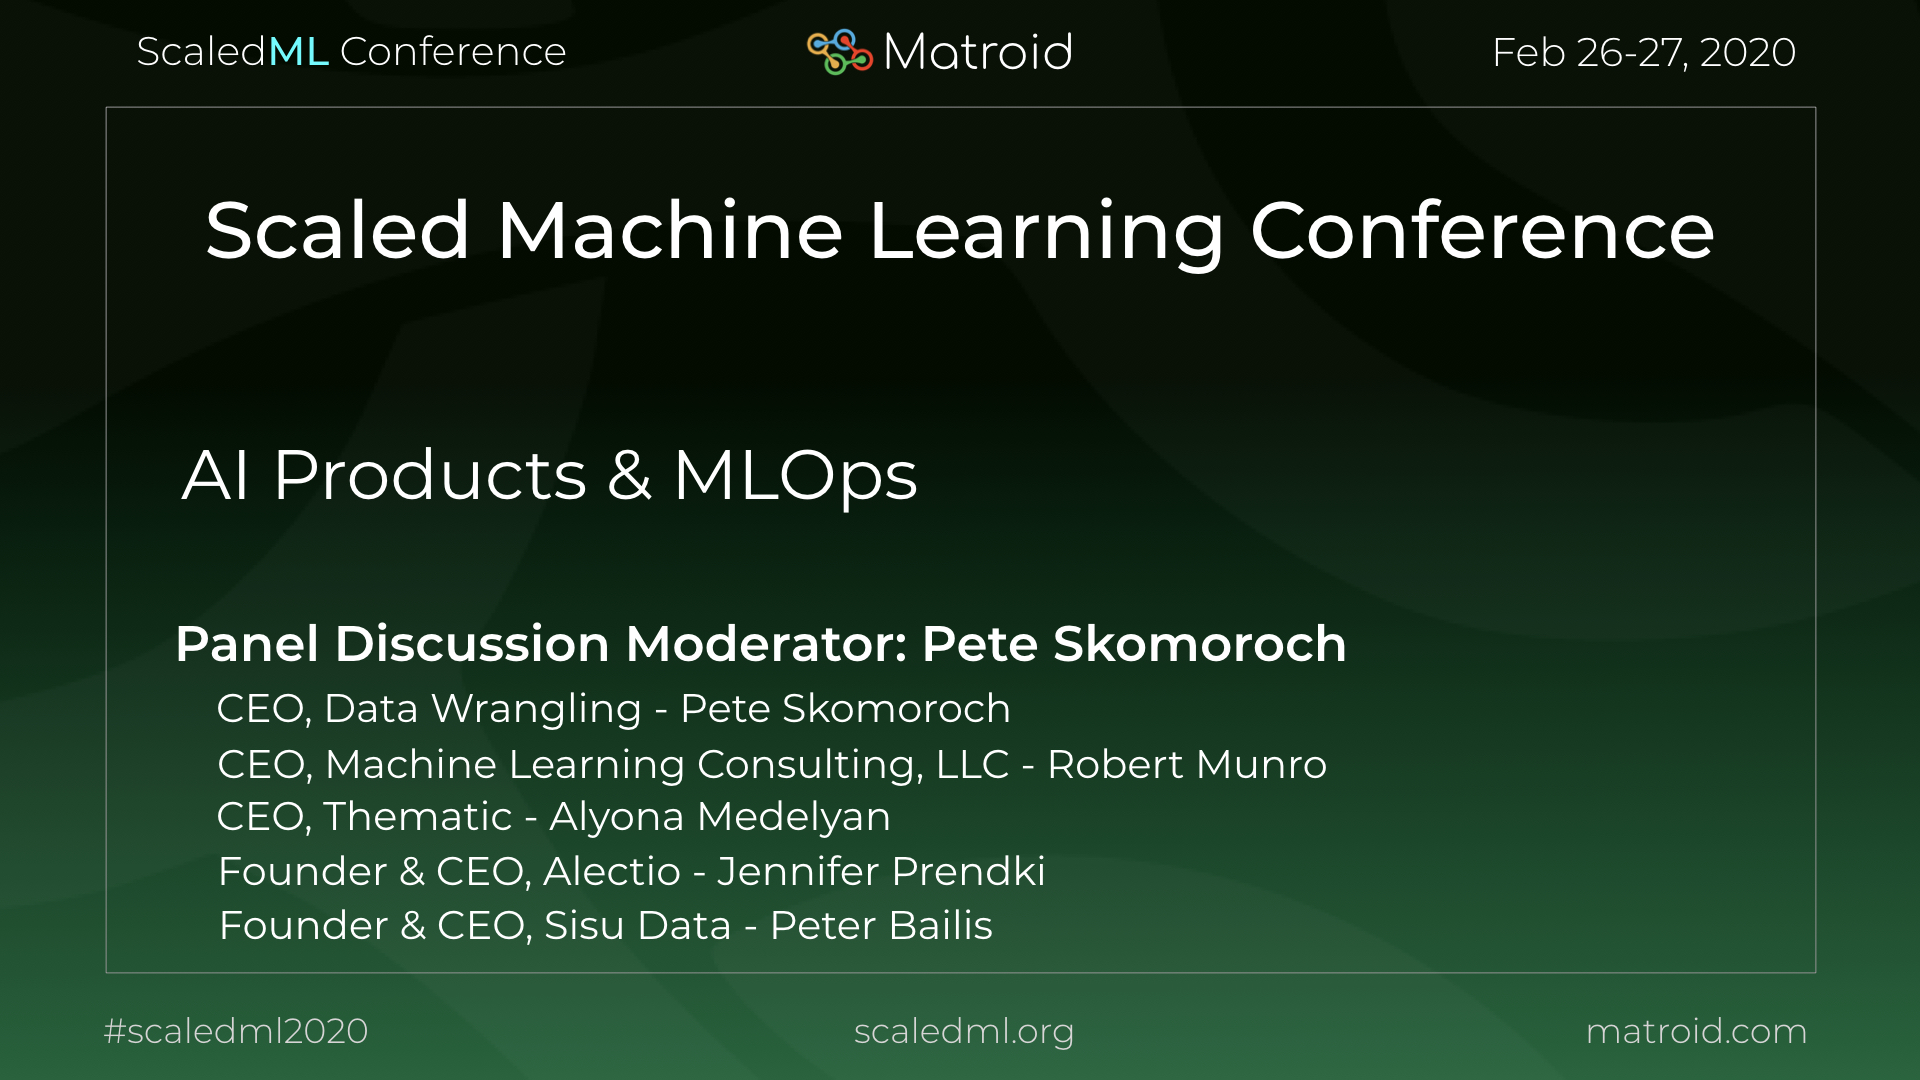 Panel Pete Skomoroch Jennifer Prendki Alyona Medelyan Robert Munro Peter Bailis ScaledML Conference TPU CPU GPU Computer Vision AI Artificial Intelligence Machine Learning